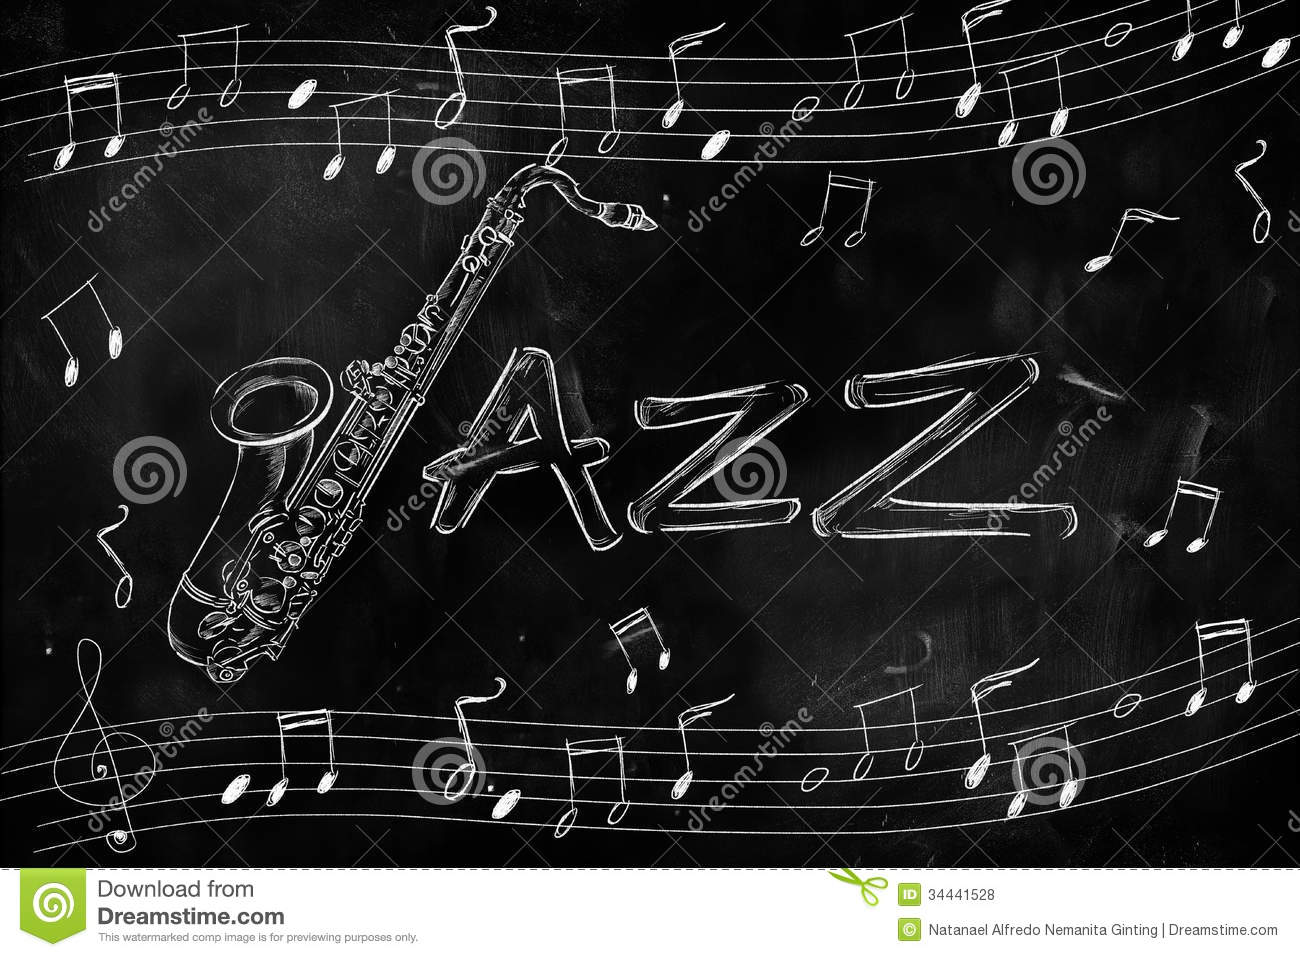 Jazz saxophone drawing on blackboard stock illustration jazz saxophone drawing on blackboard voltagebd Image collections